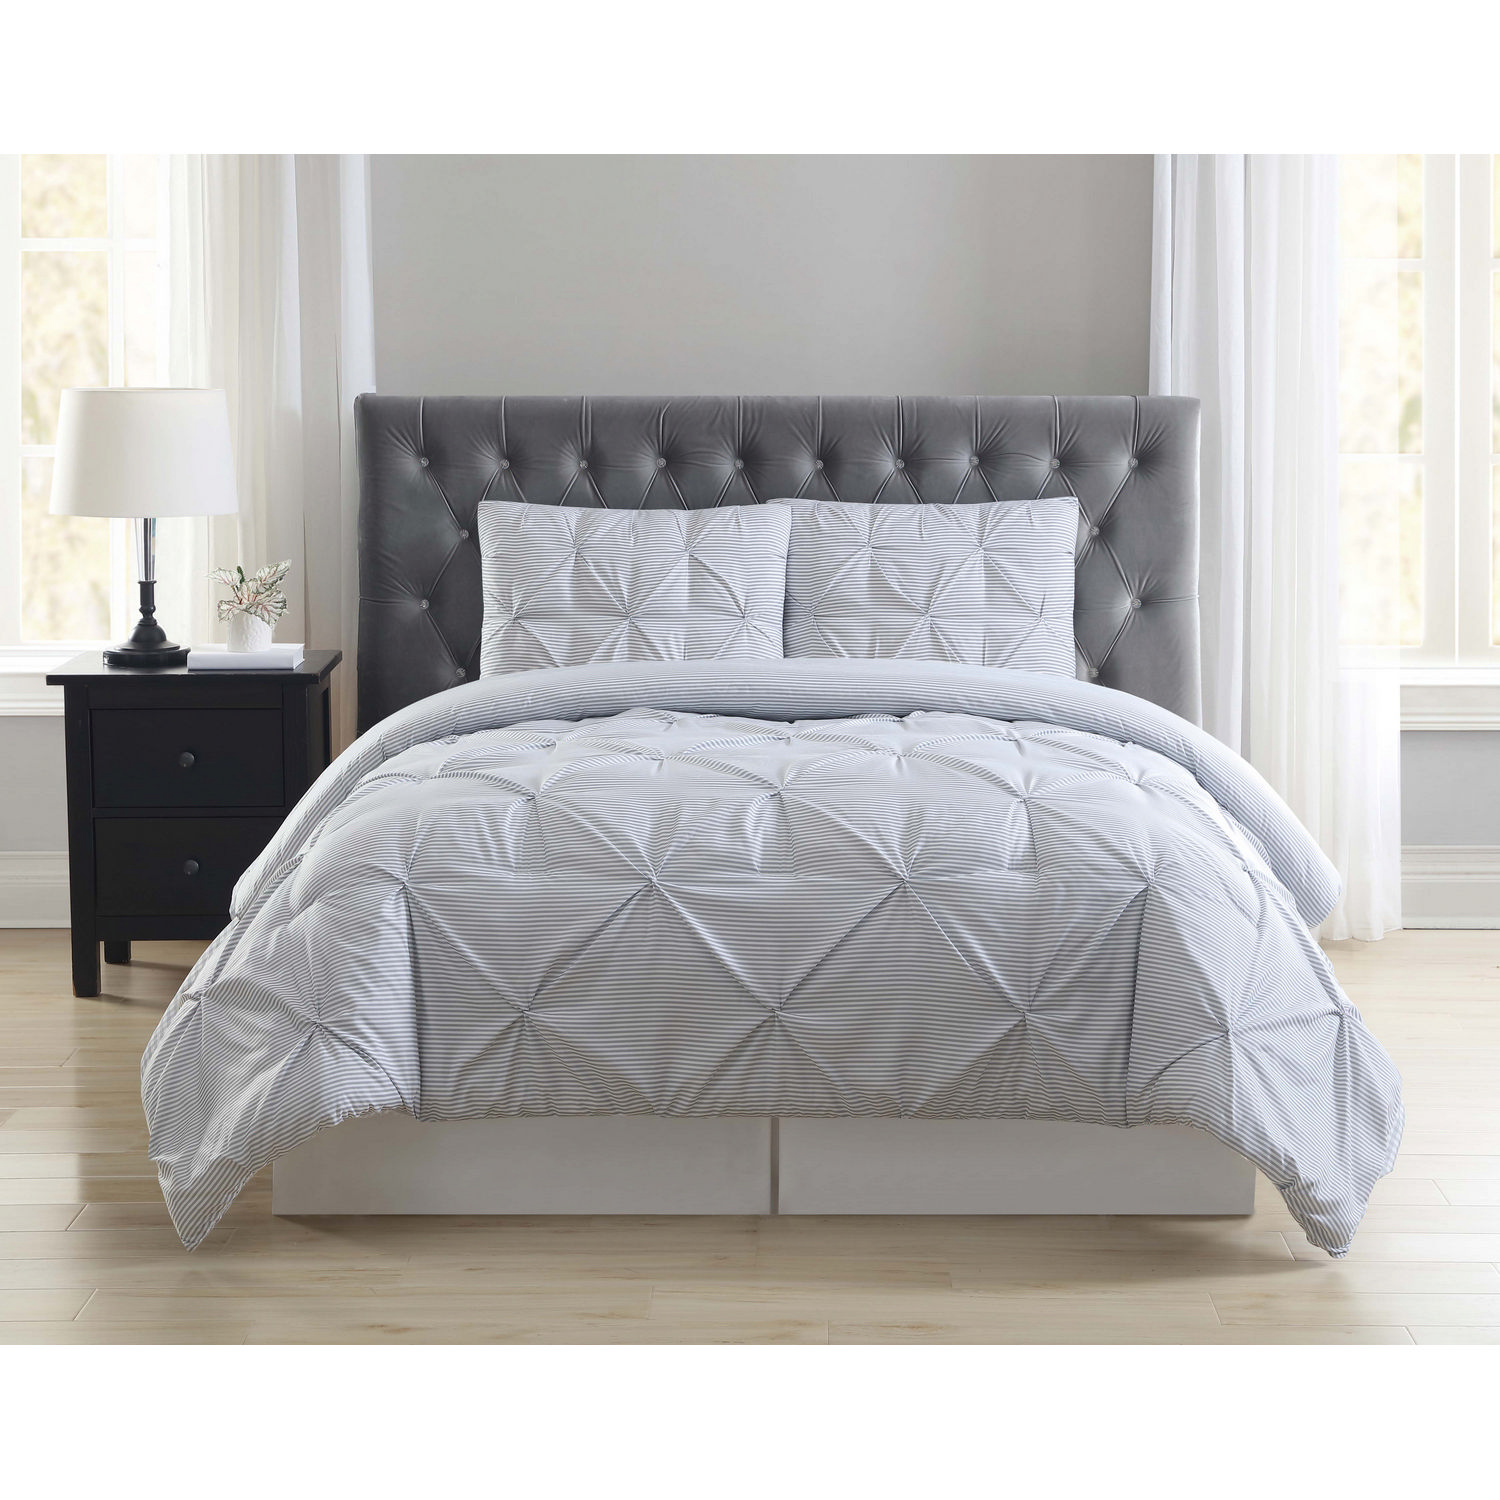 Truly Soft Everyday Stripe Pleat Grey Twin Extra Long Comforter Set